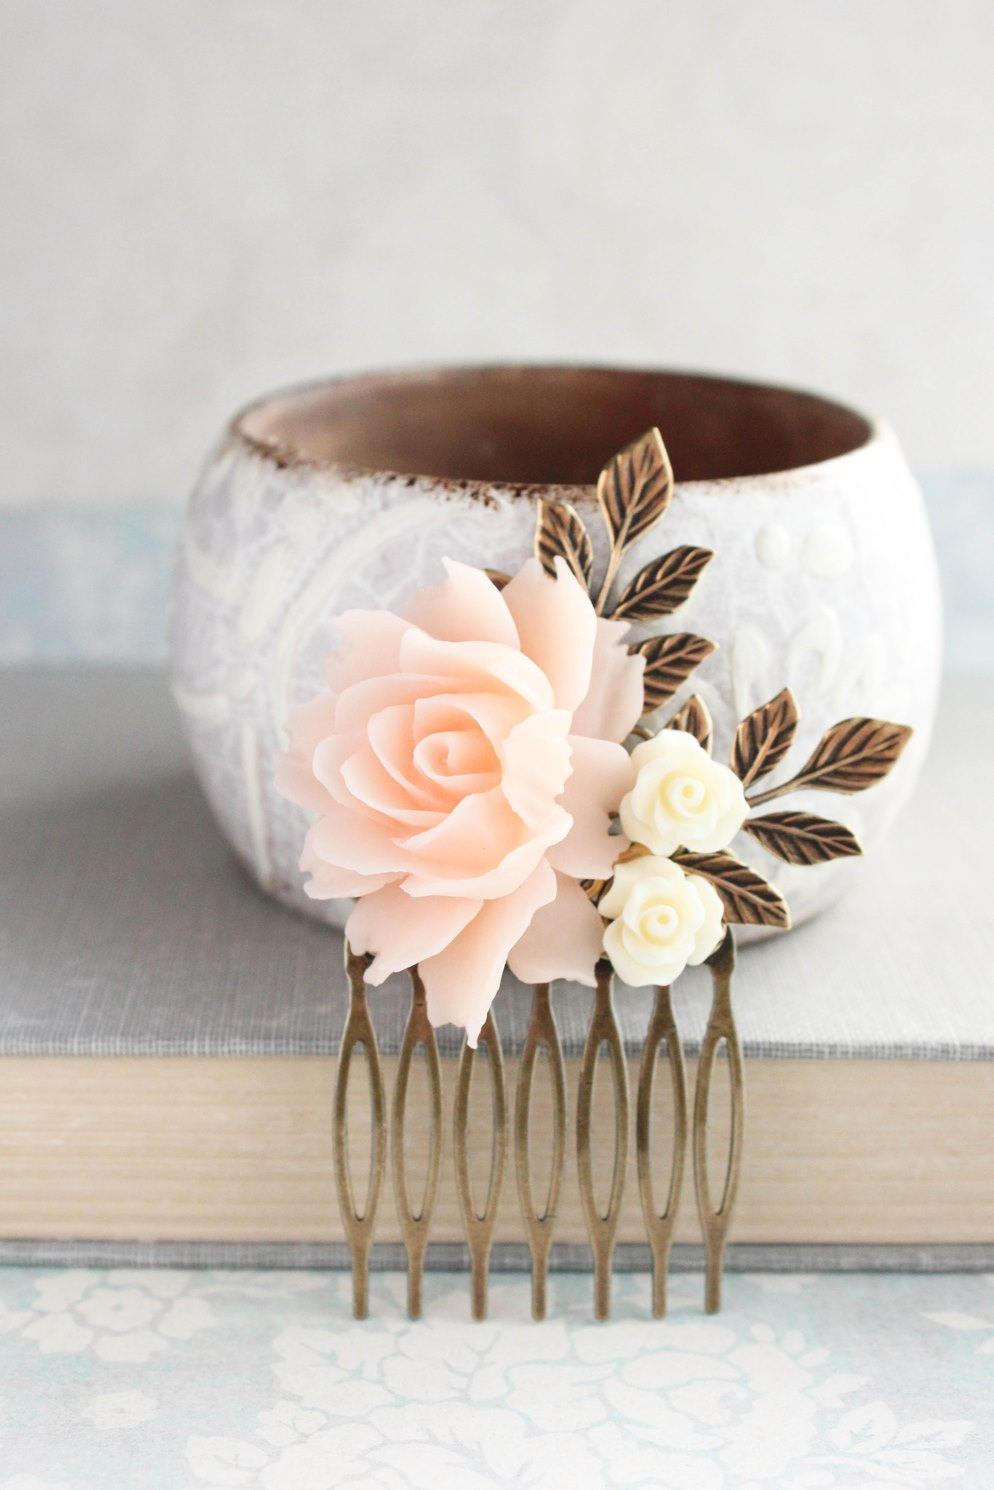 Pale Peach Blush Rose Comb - C1016